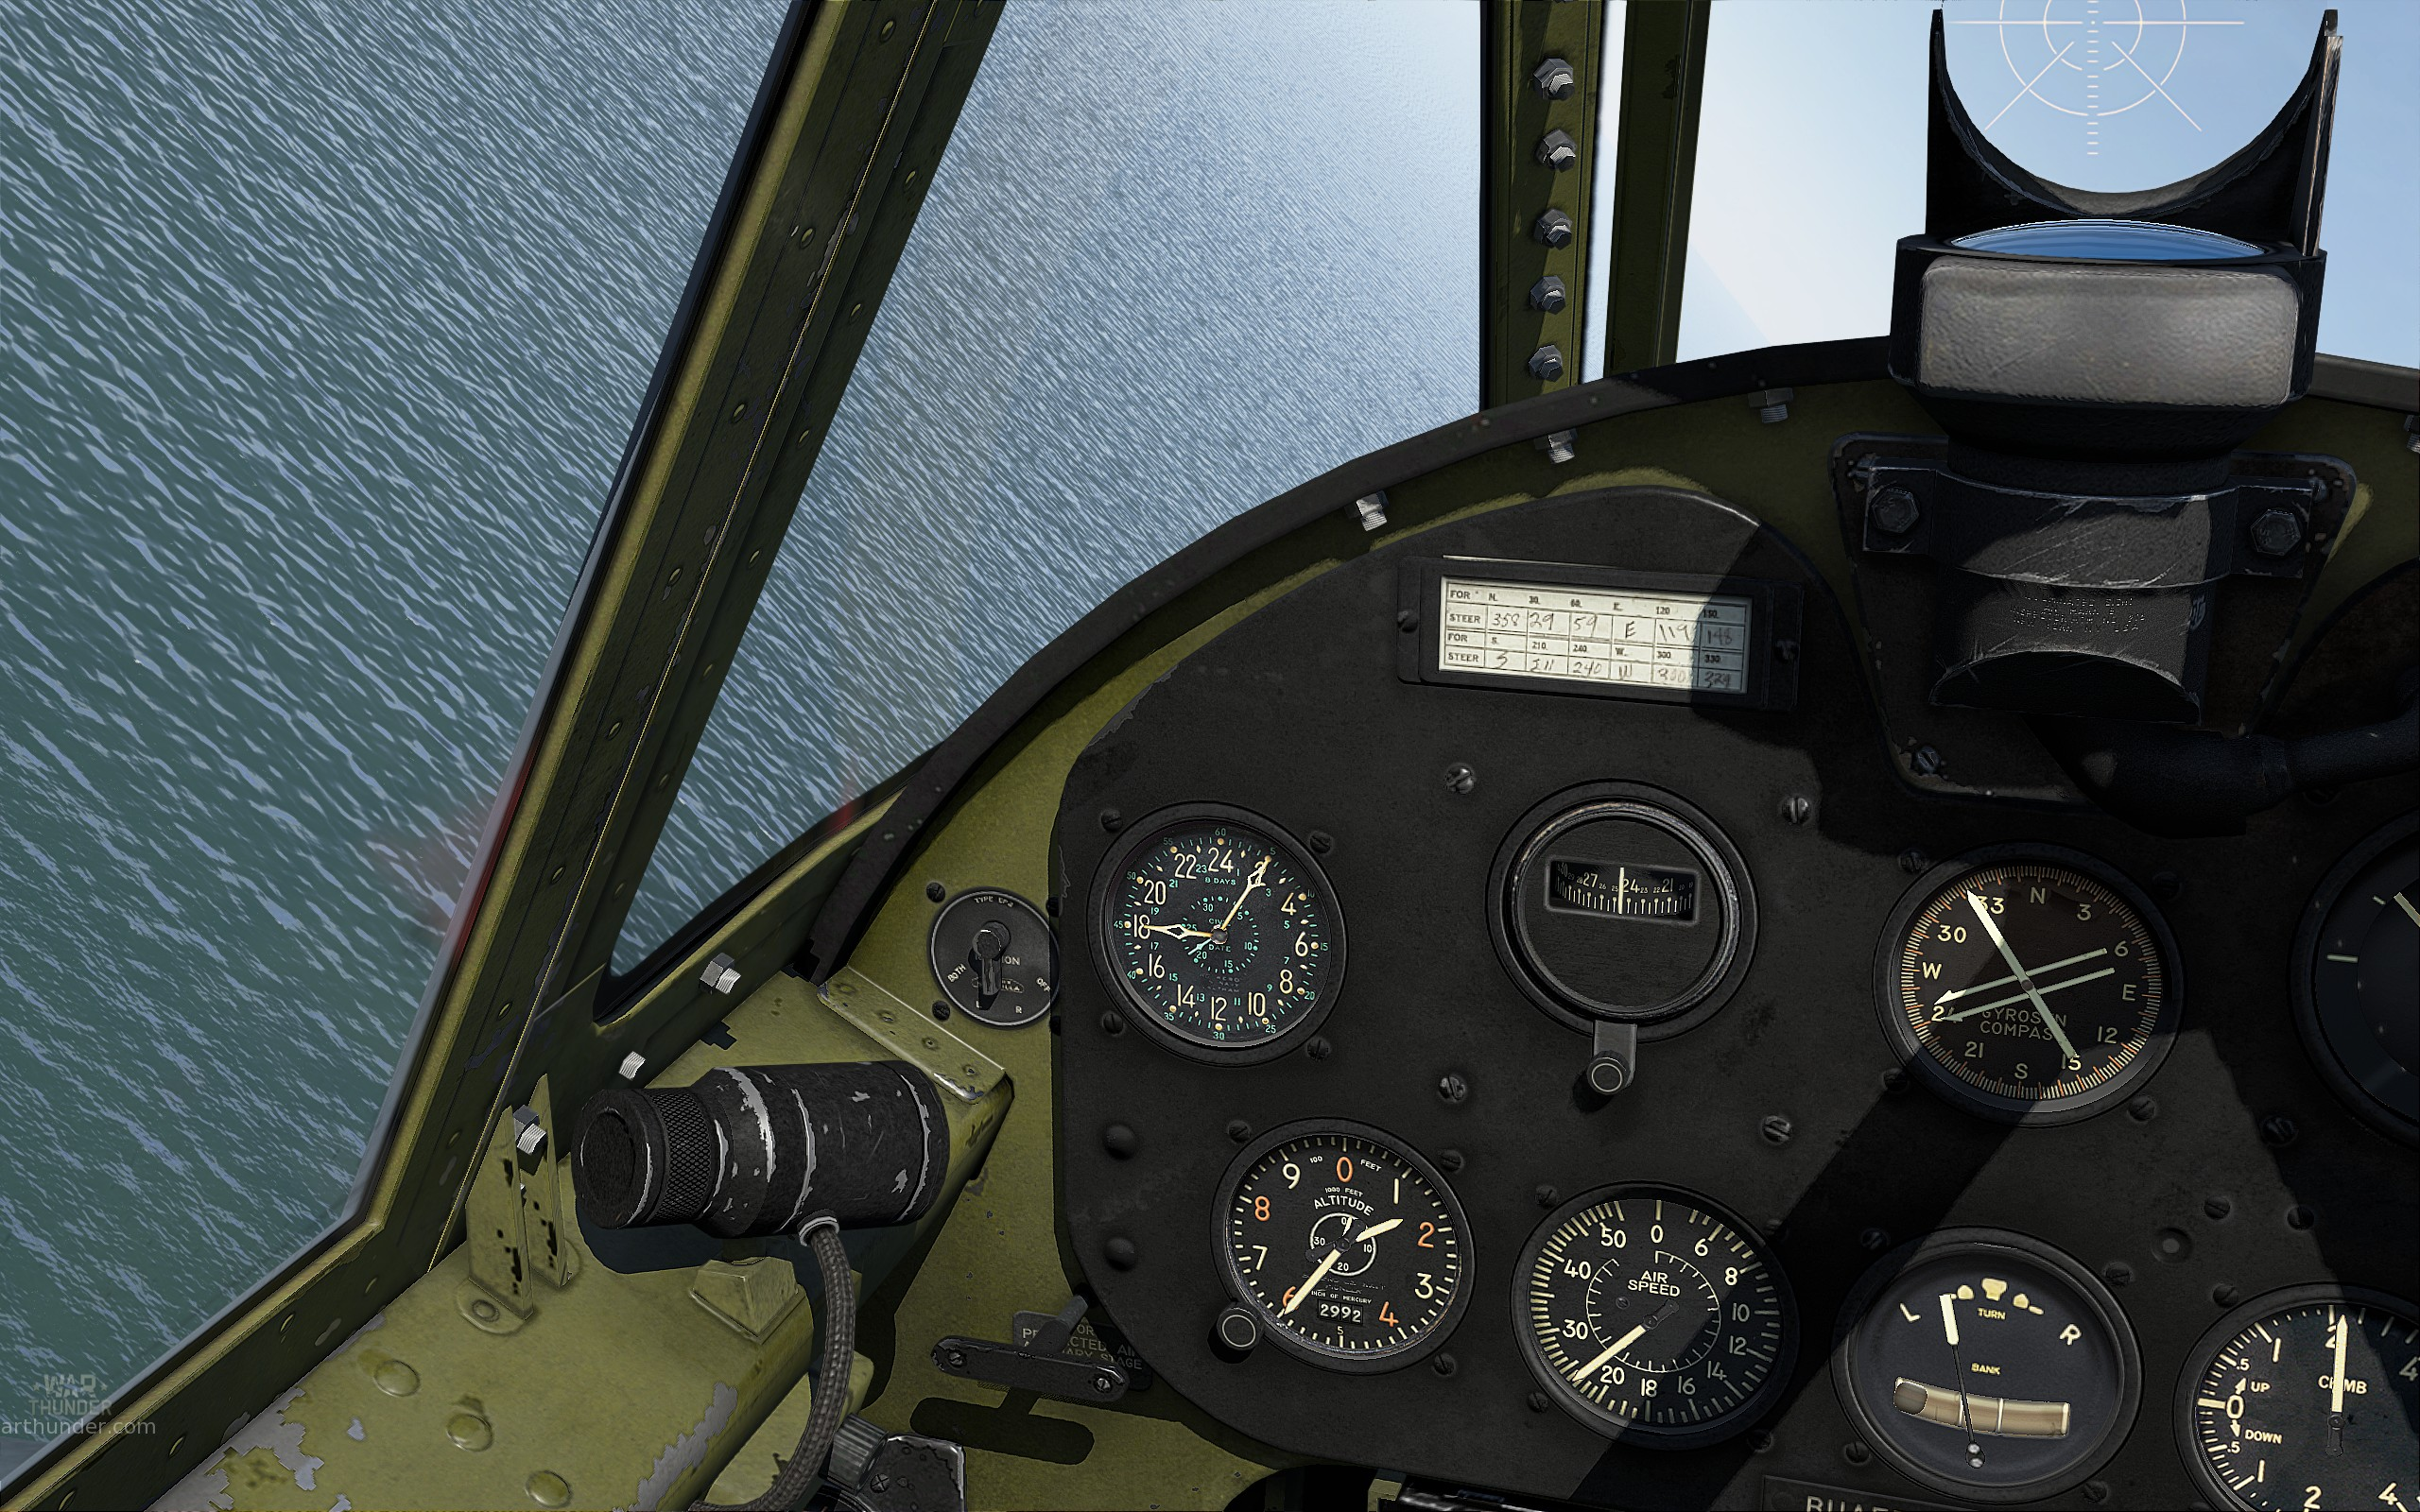 F6F-3 virtual cockpit repaint  - Simulator Battle Discussion